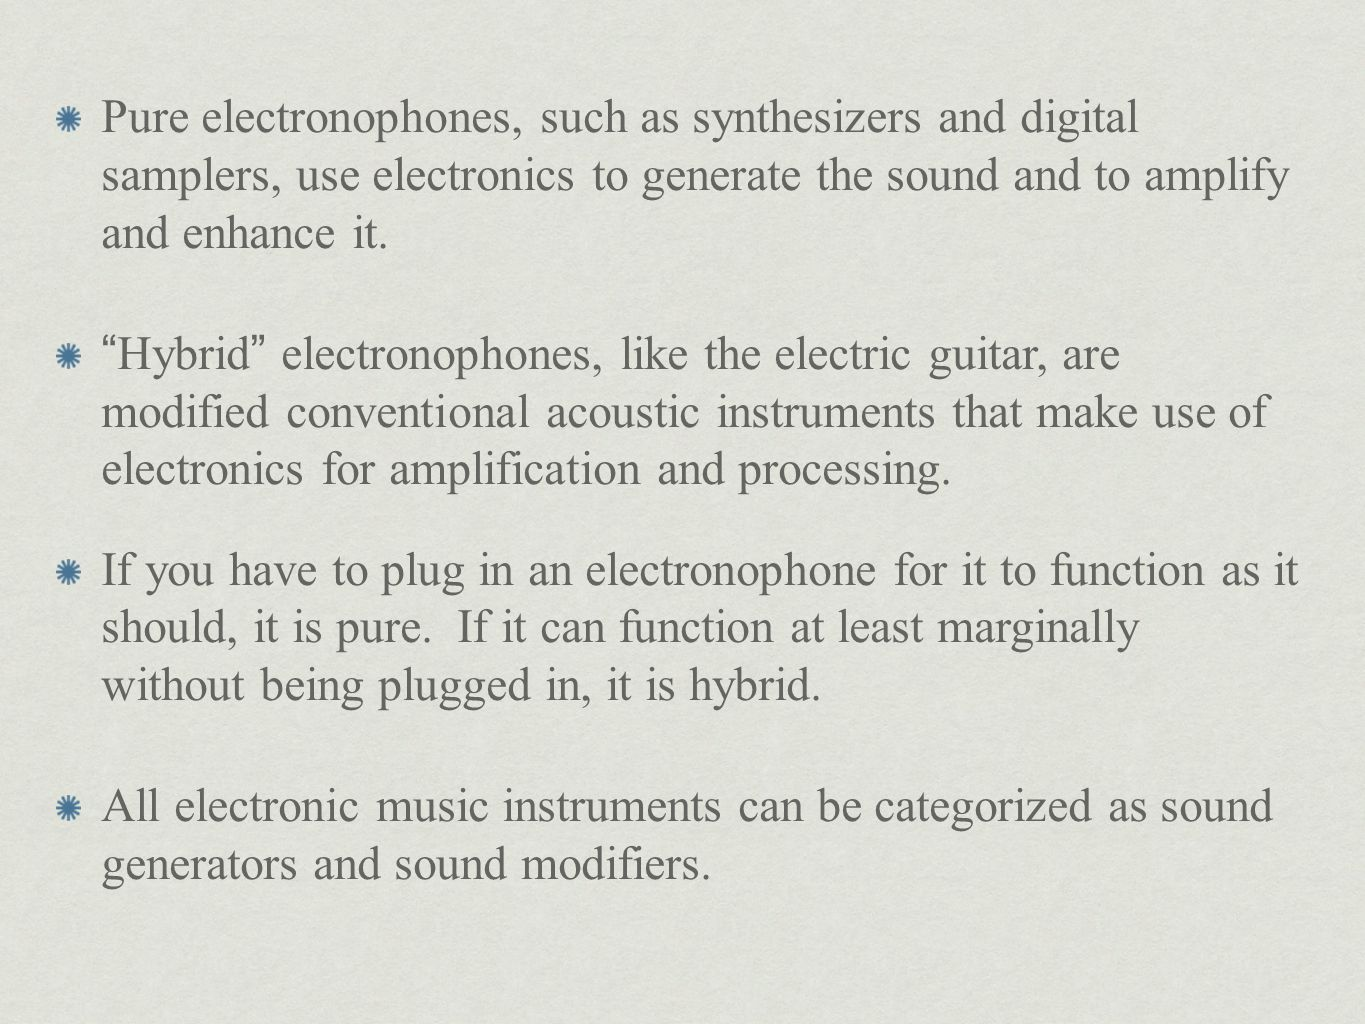 Pure electronophones, such as synthesizers and digital samplers, use electronics to generate the sound and to amplify and enhance it.